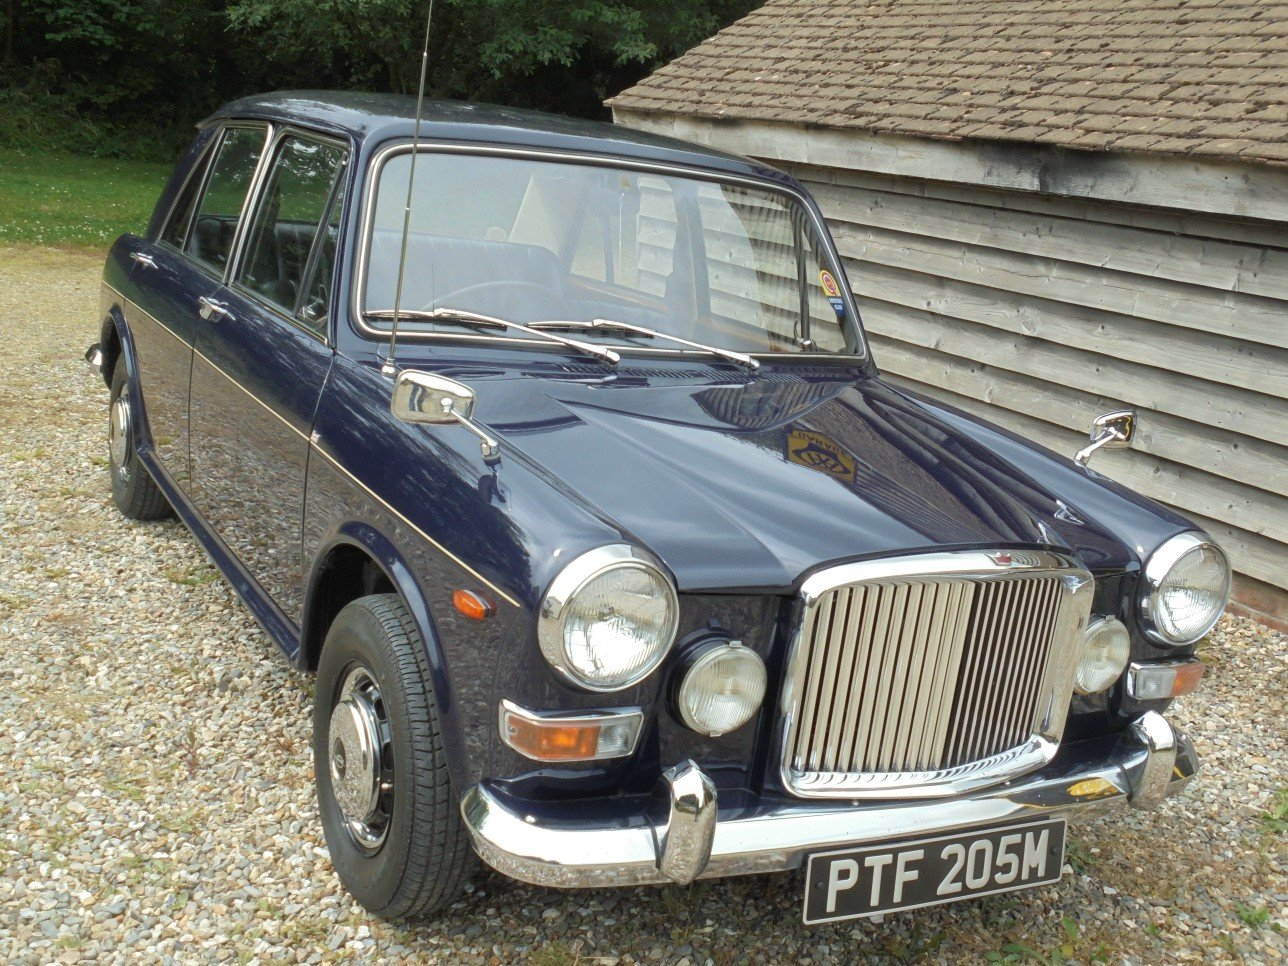 1973 Austin Princess Vanden Plas 1300 MK 3 Automatic. For Sale (picture 1 of 6)